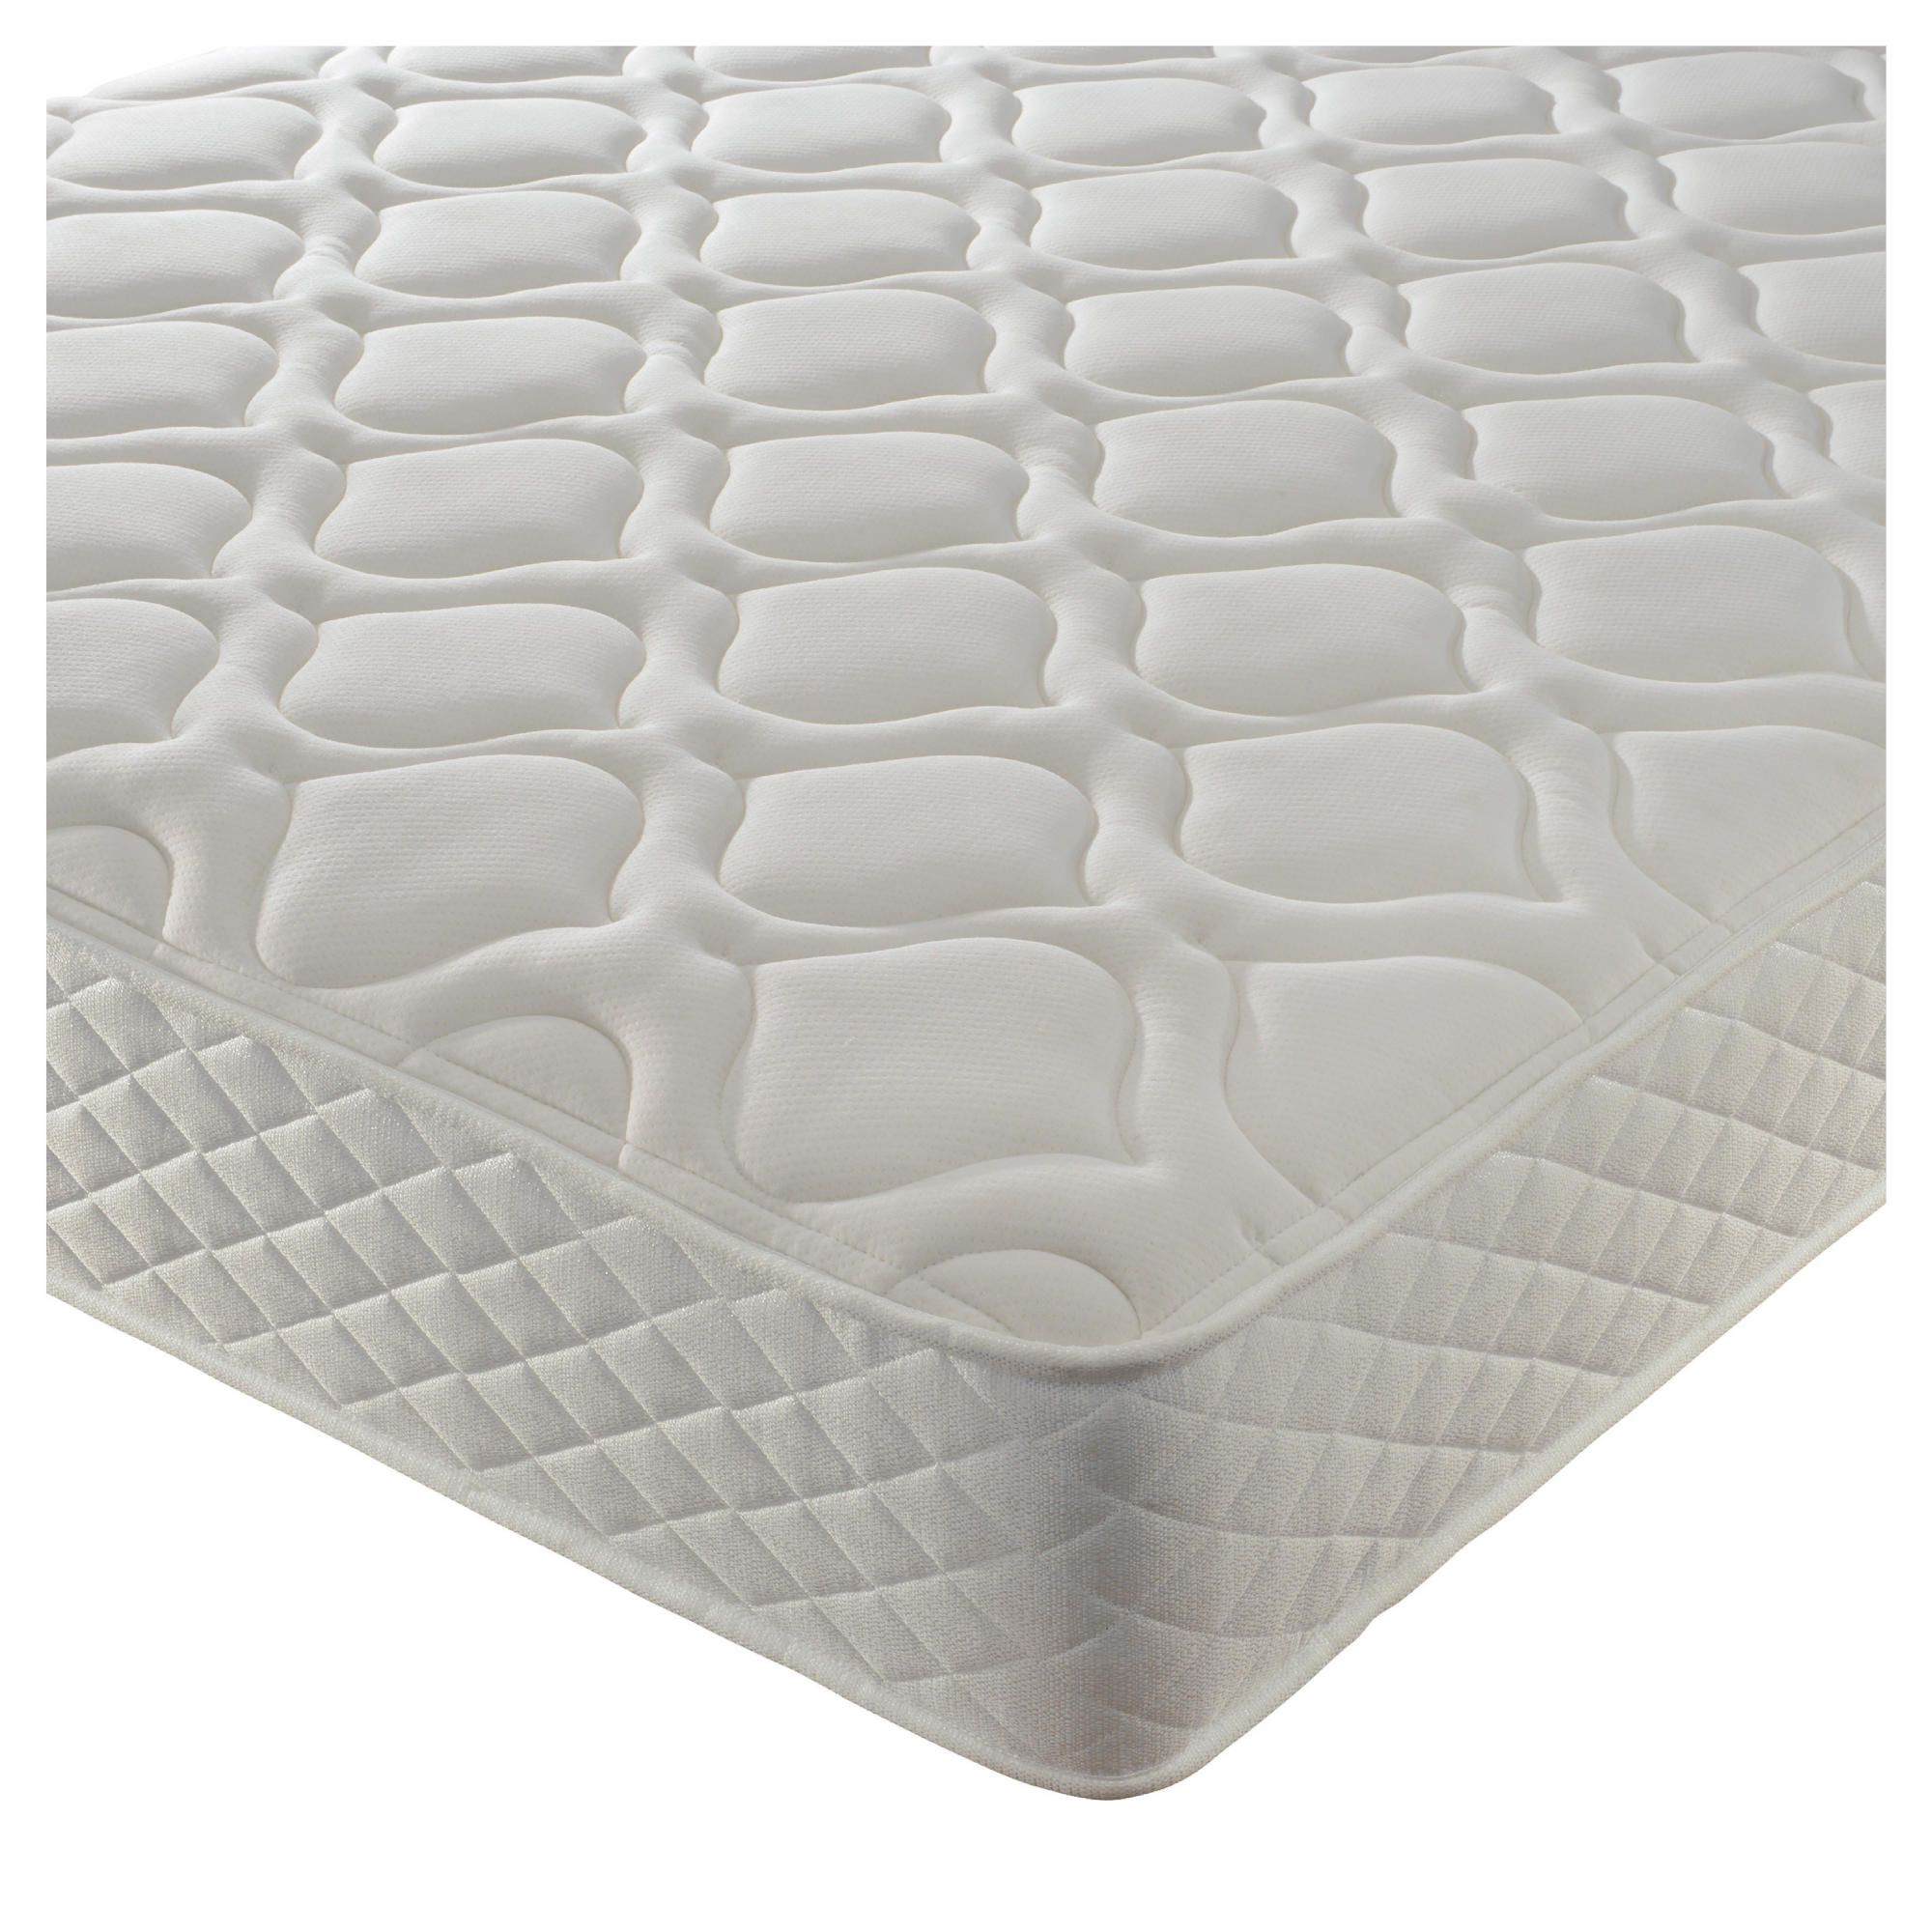 Silentnight Miracoil Luxury Micro Quilt Super King Size Mattress at Tesco Direct